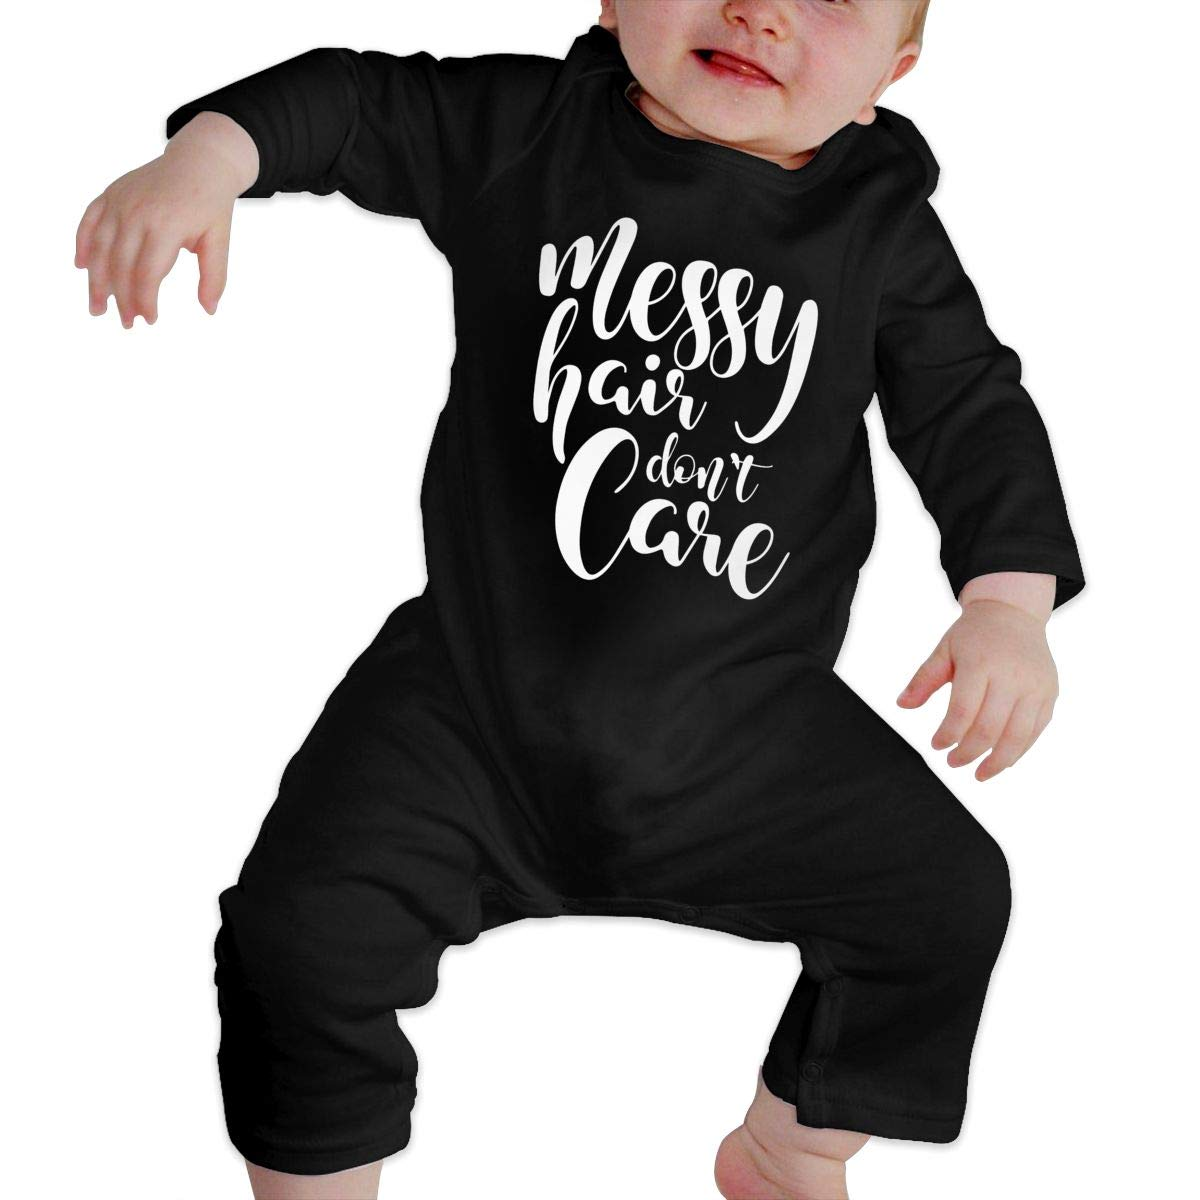 Fasenix Messy Hair Dont Care Logo Romper Jumpsuit Long Sleeve Bodysuit Overalls Outfits Clothes for Newborn Baby Boy Girl